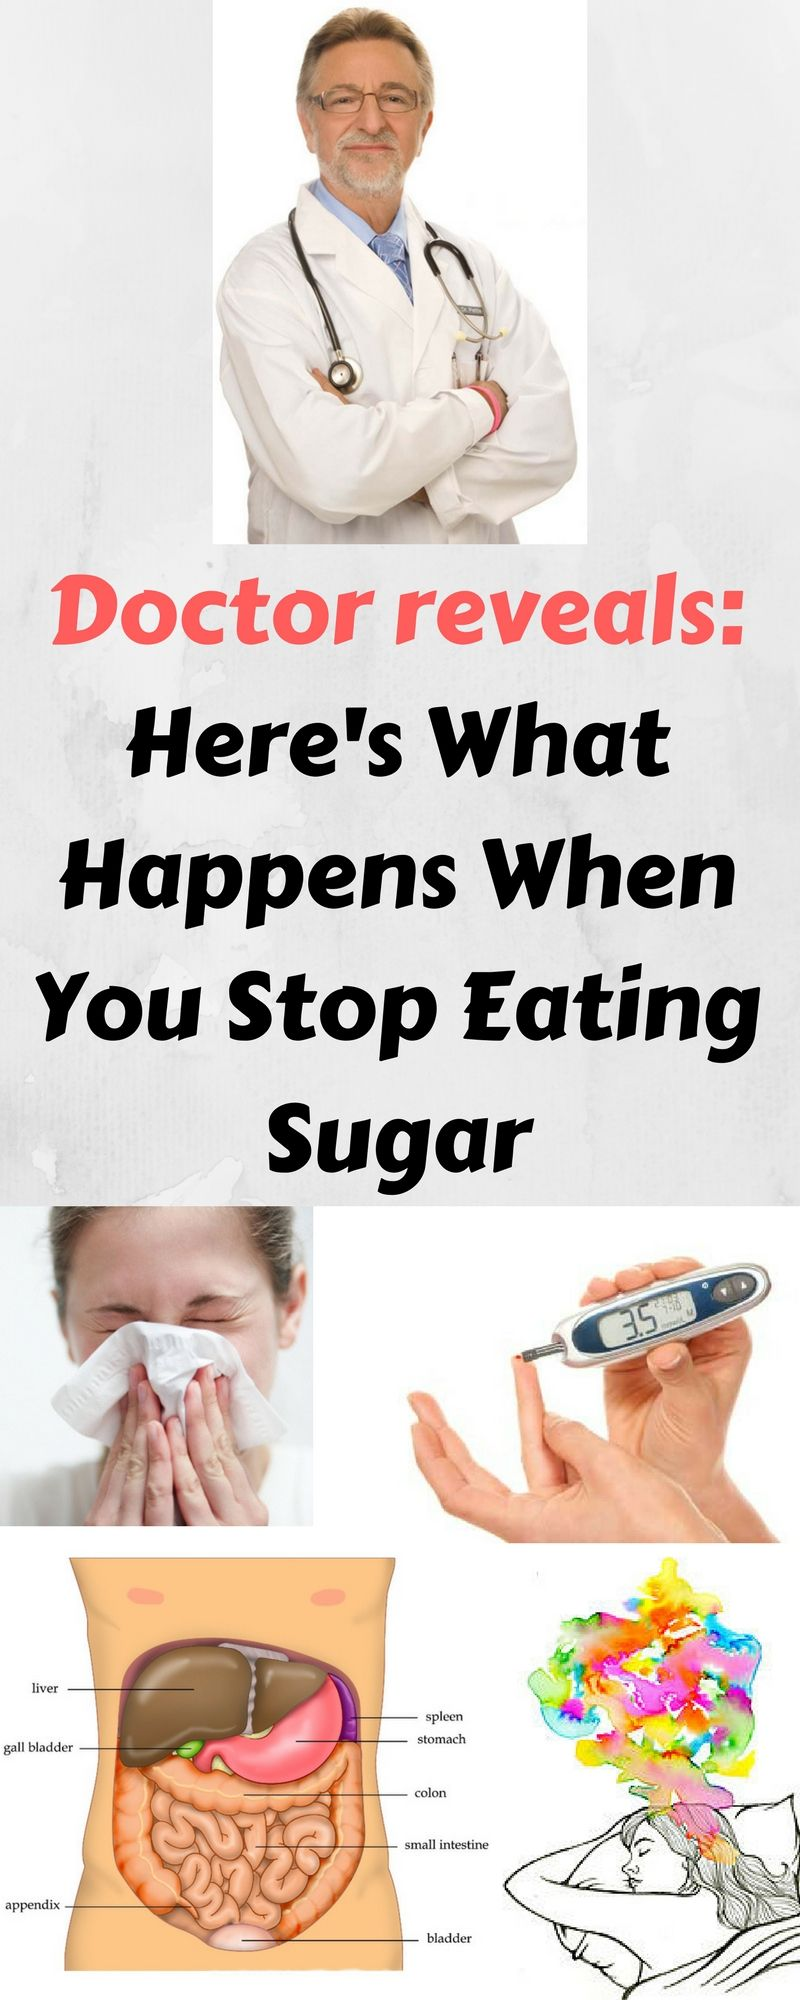 Things That Happen To Your Body When You Stop Eating Sugar